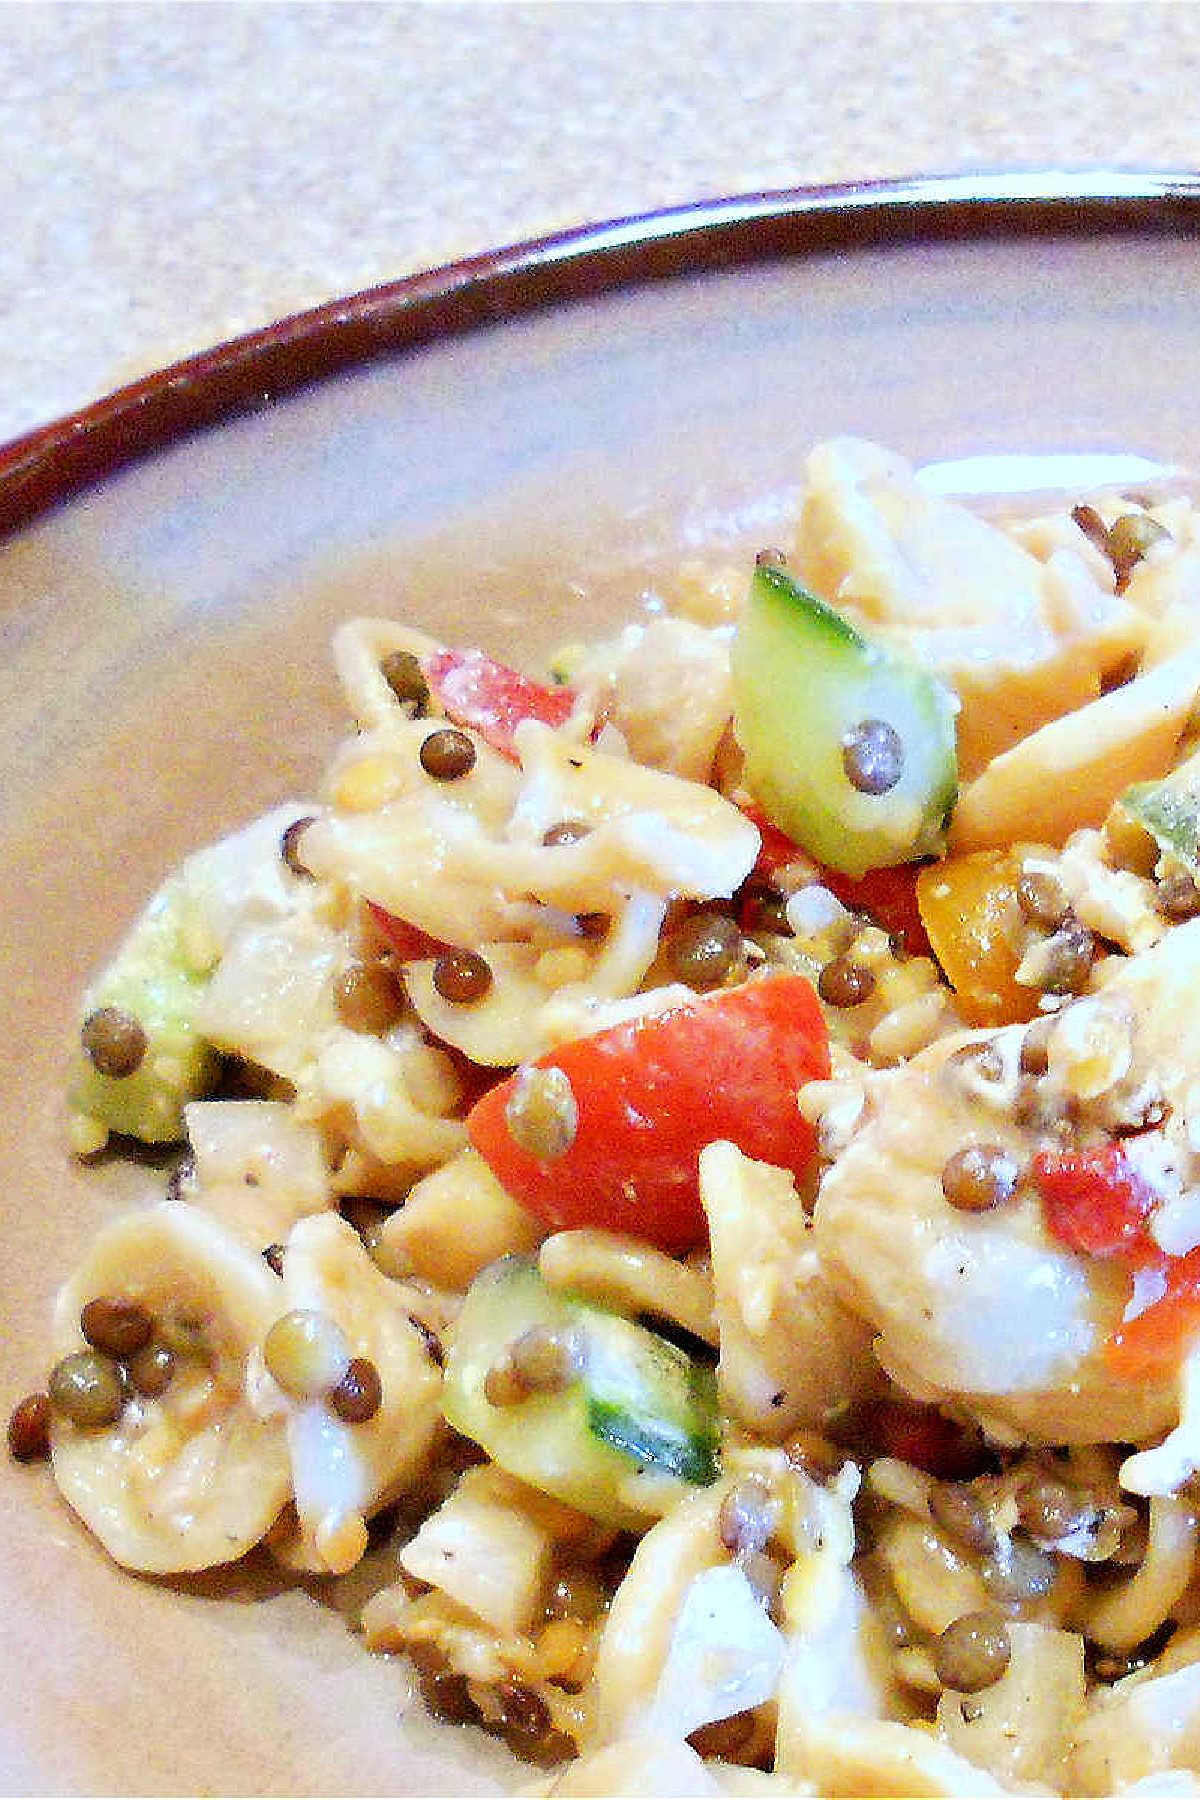 A Closeup view of pasta salad with lentils, chickpeas, and tomatoes on a plate.